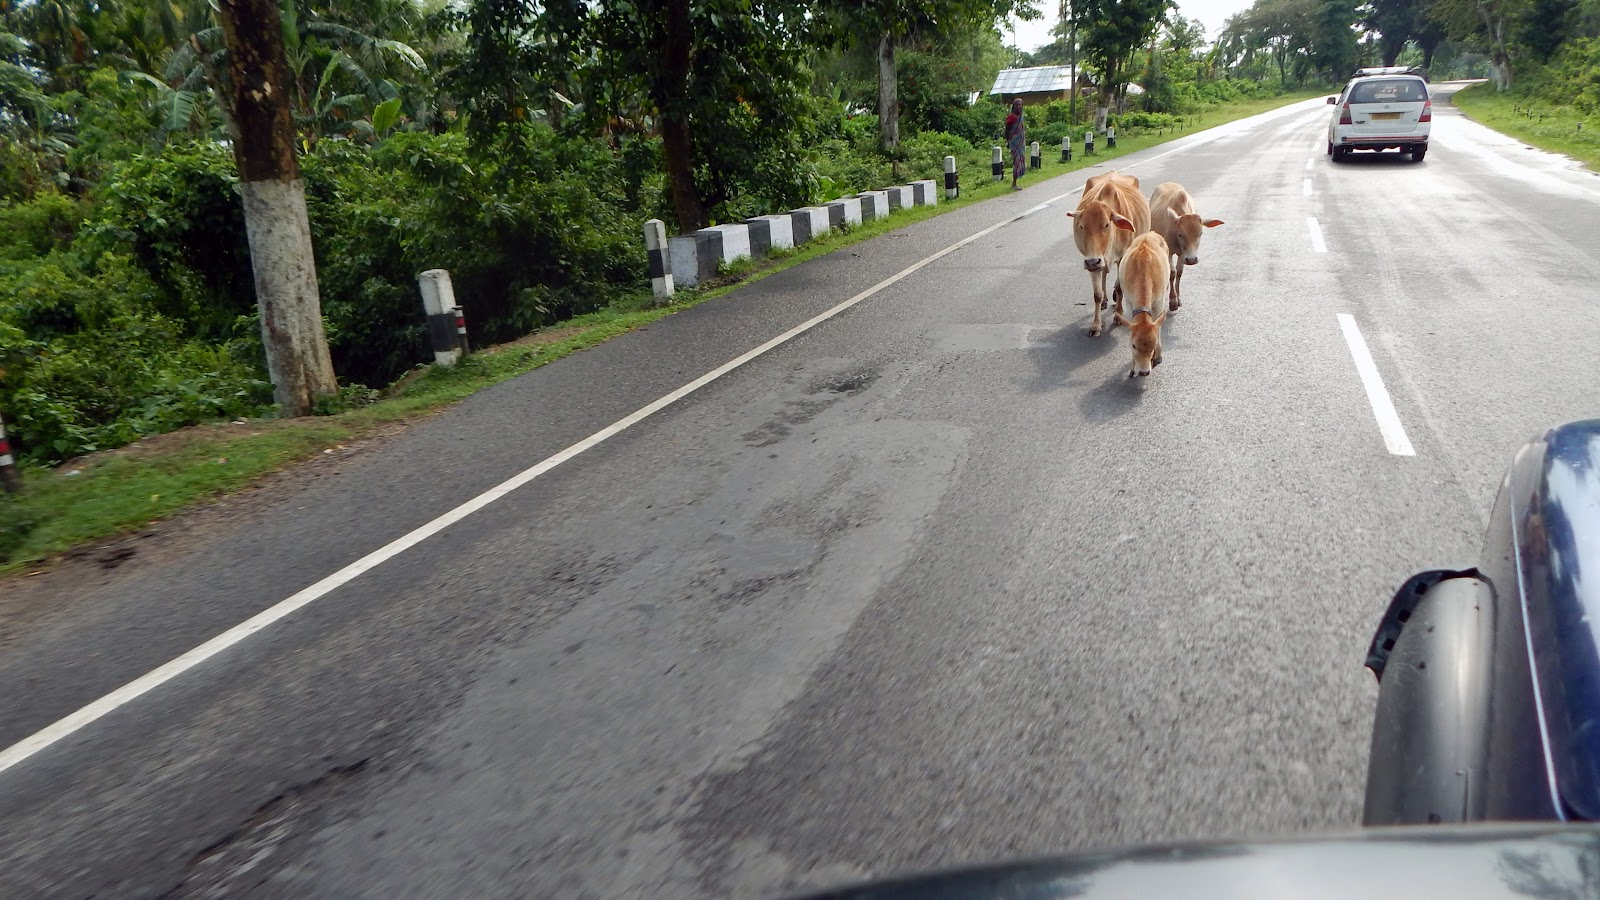 The road cow